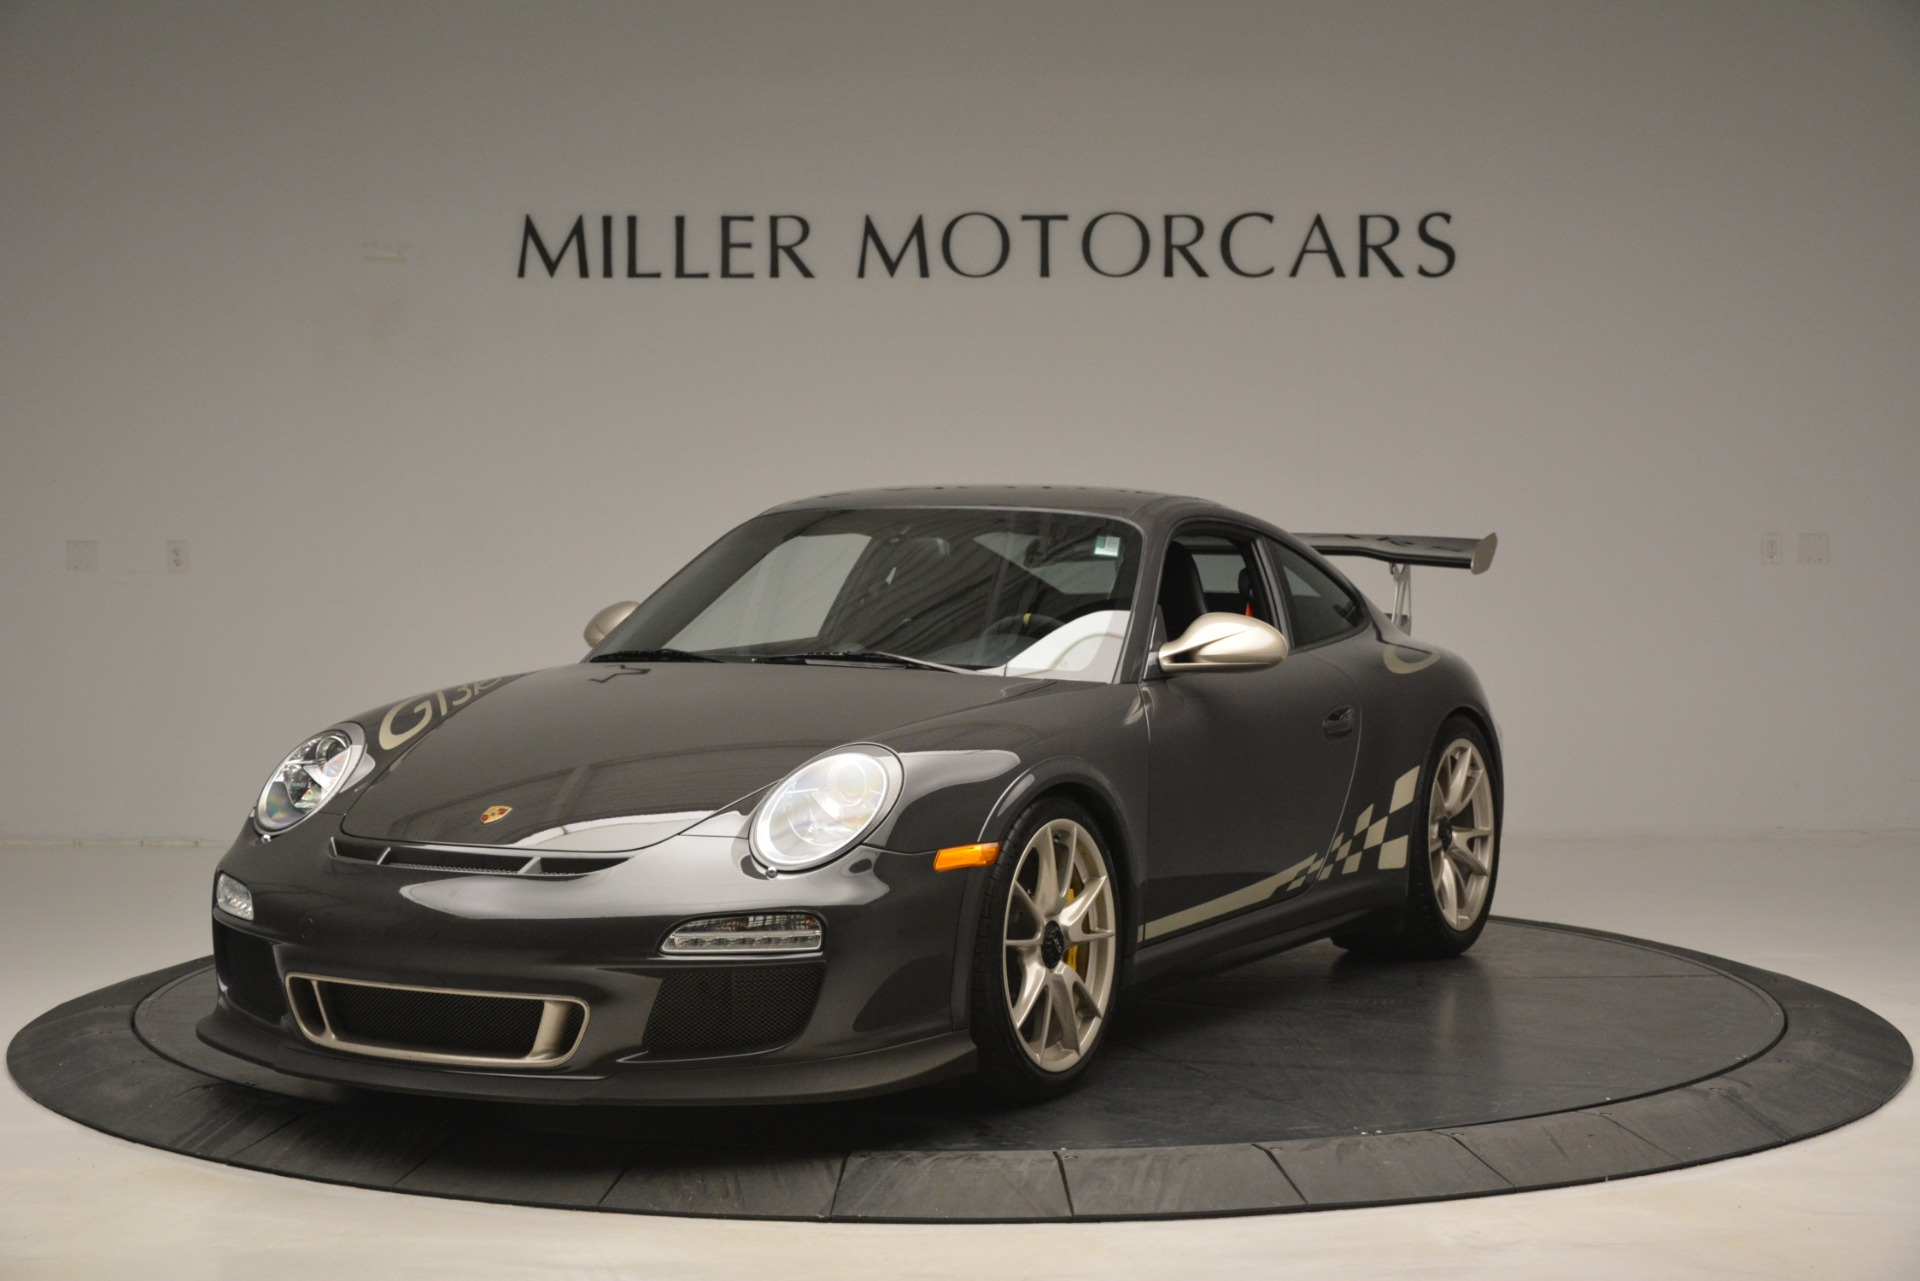 Used 2011 Porsche 911 GT3 RS for sale Sold at Bugatti of Greenwich in Greenwich CT 06830 1